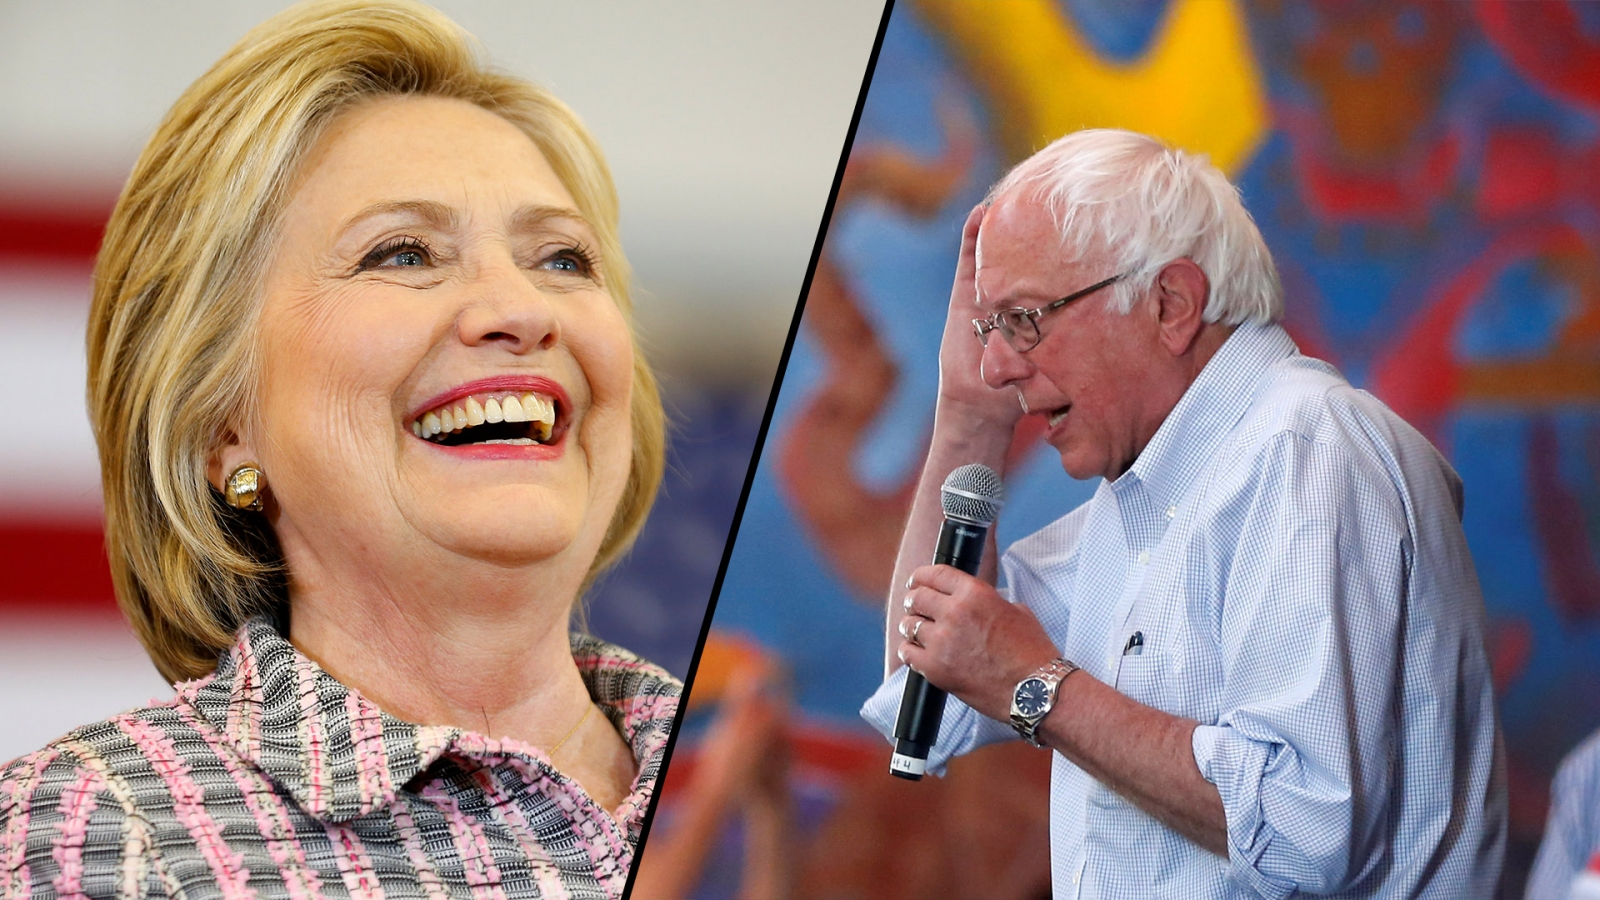 Sanders and Clinton almost tied before California